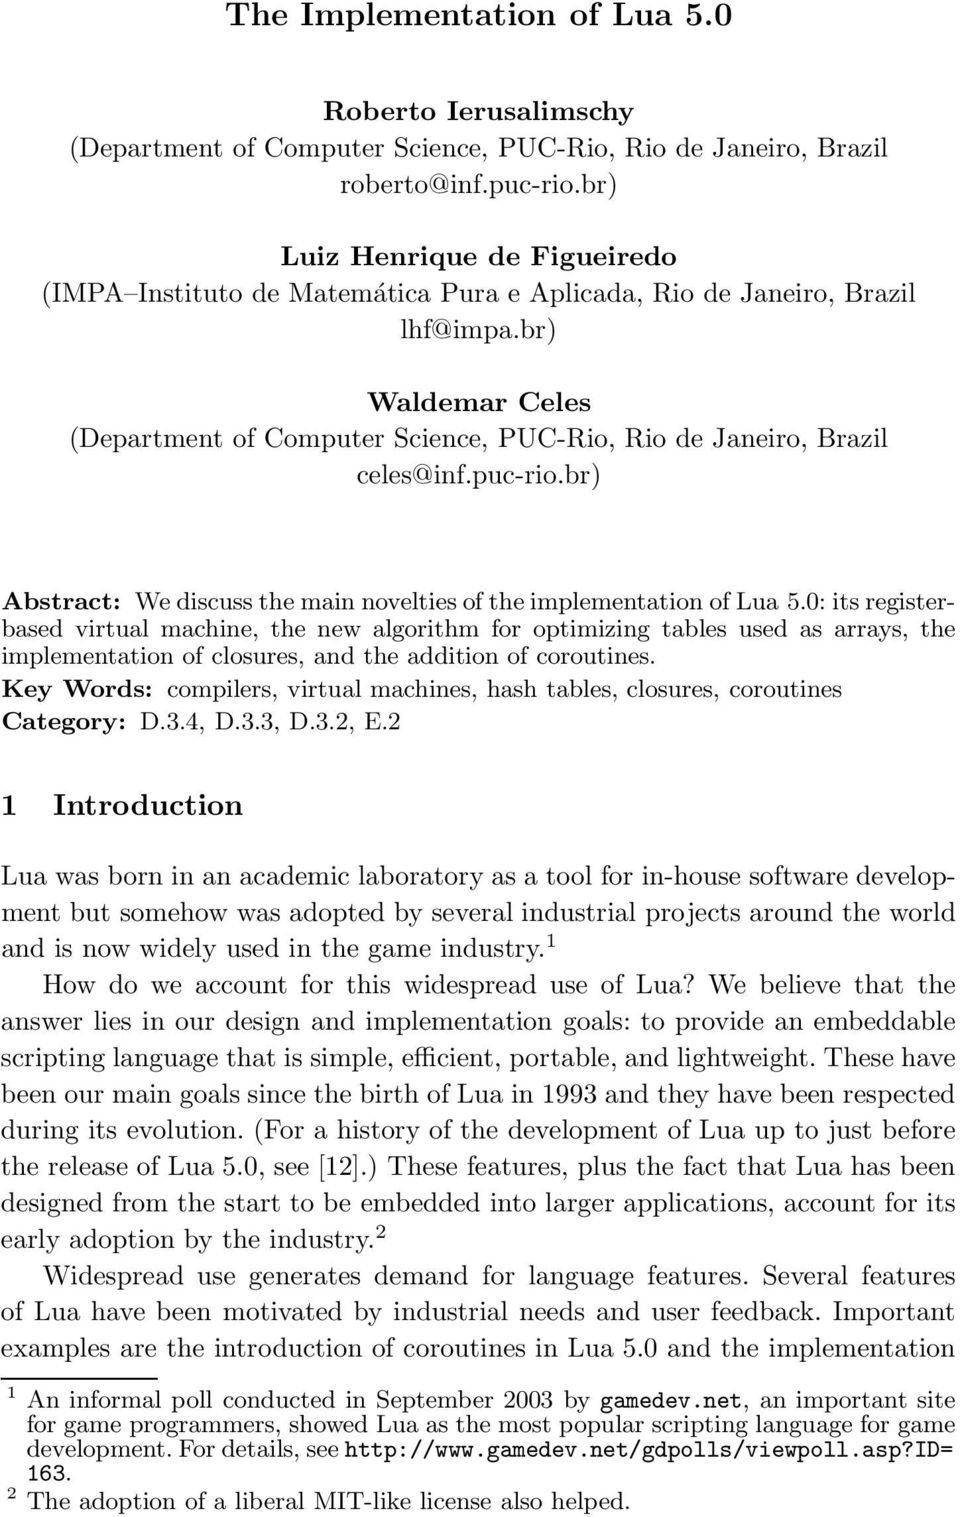 br) Waldemar Celes (Department of Computer Science, PUC-Rio, Rio de Janeiro, Brazil celes@inf.puc-rio.br) Abstract: We discuss the main novelties of the implementation of Lua 5.